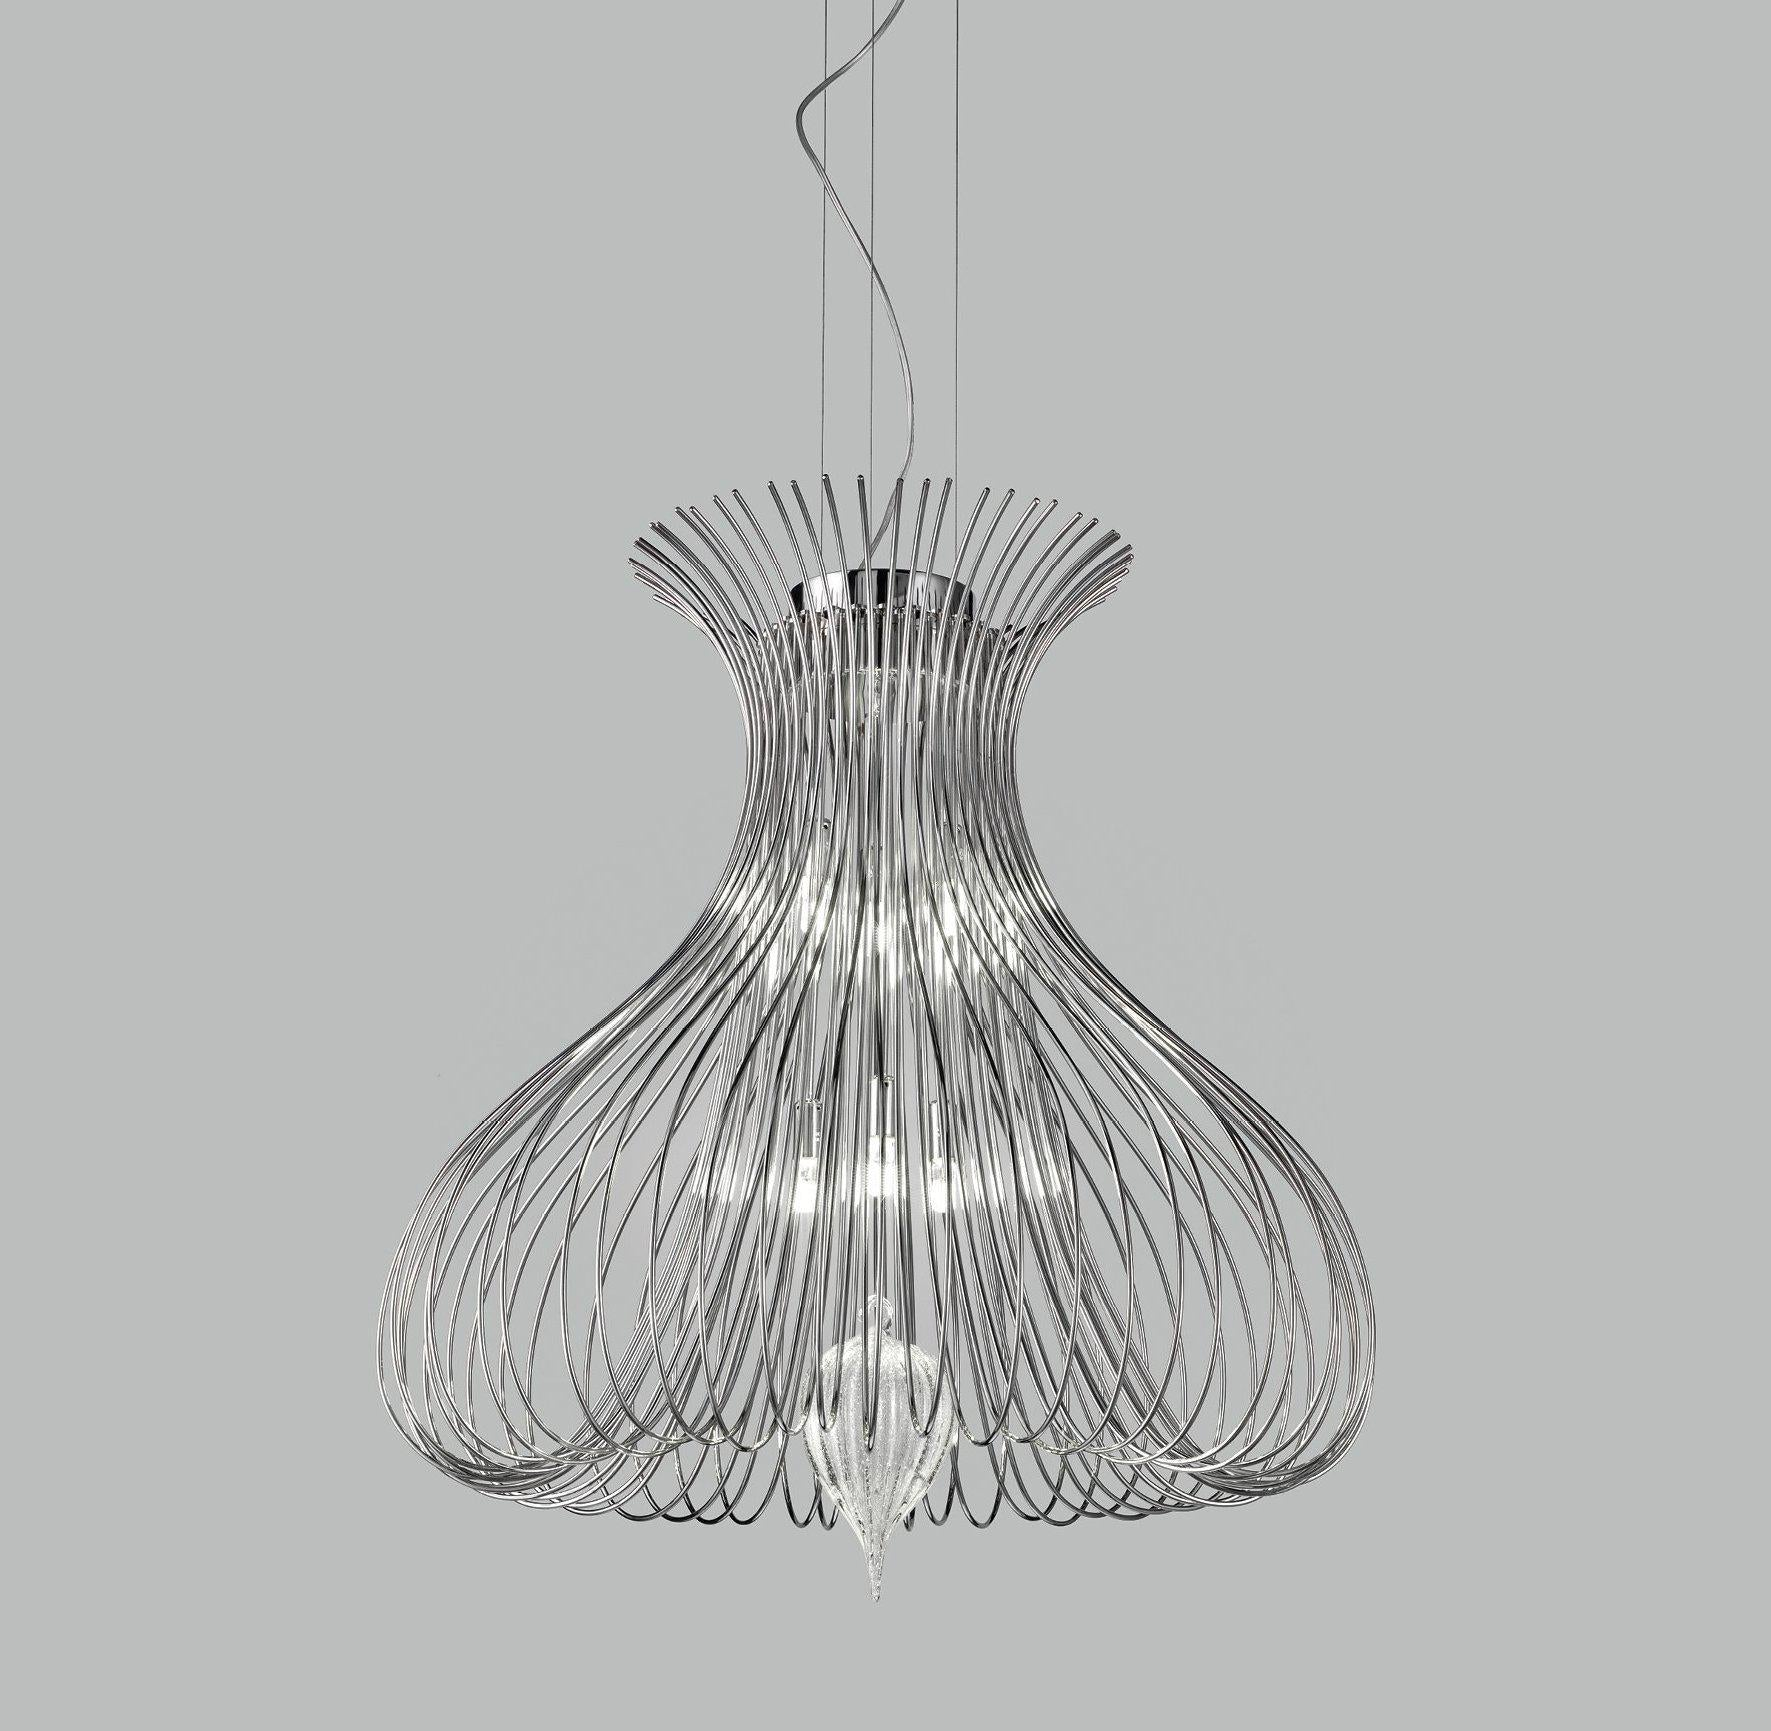 Contemporary Metal Pendant Ceiling Light Vortex Design Crafted with Wire 60cm diameter with 6 Lamps-Chrome-Distinct Designs (London) Ltd